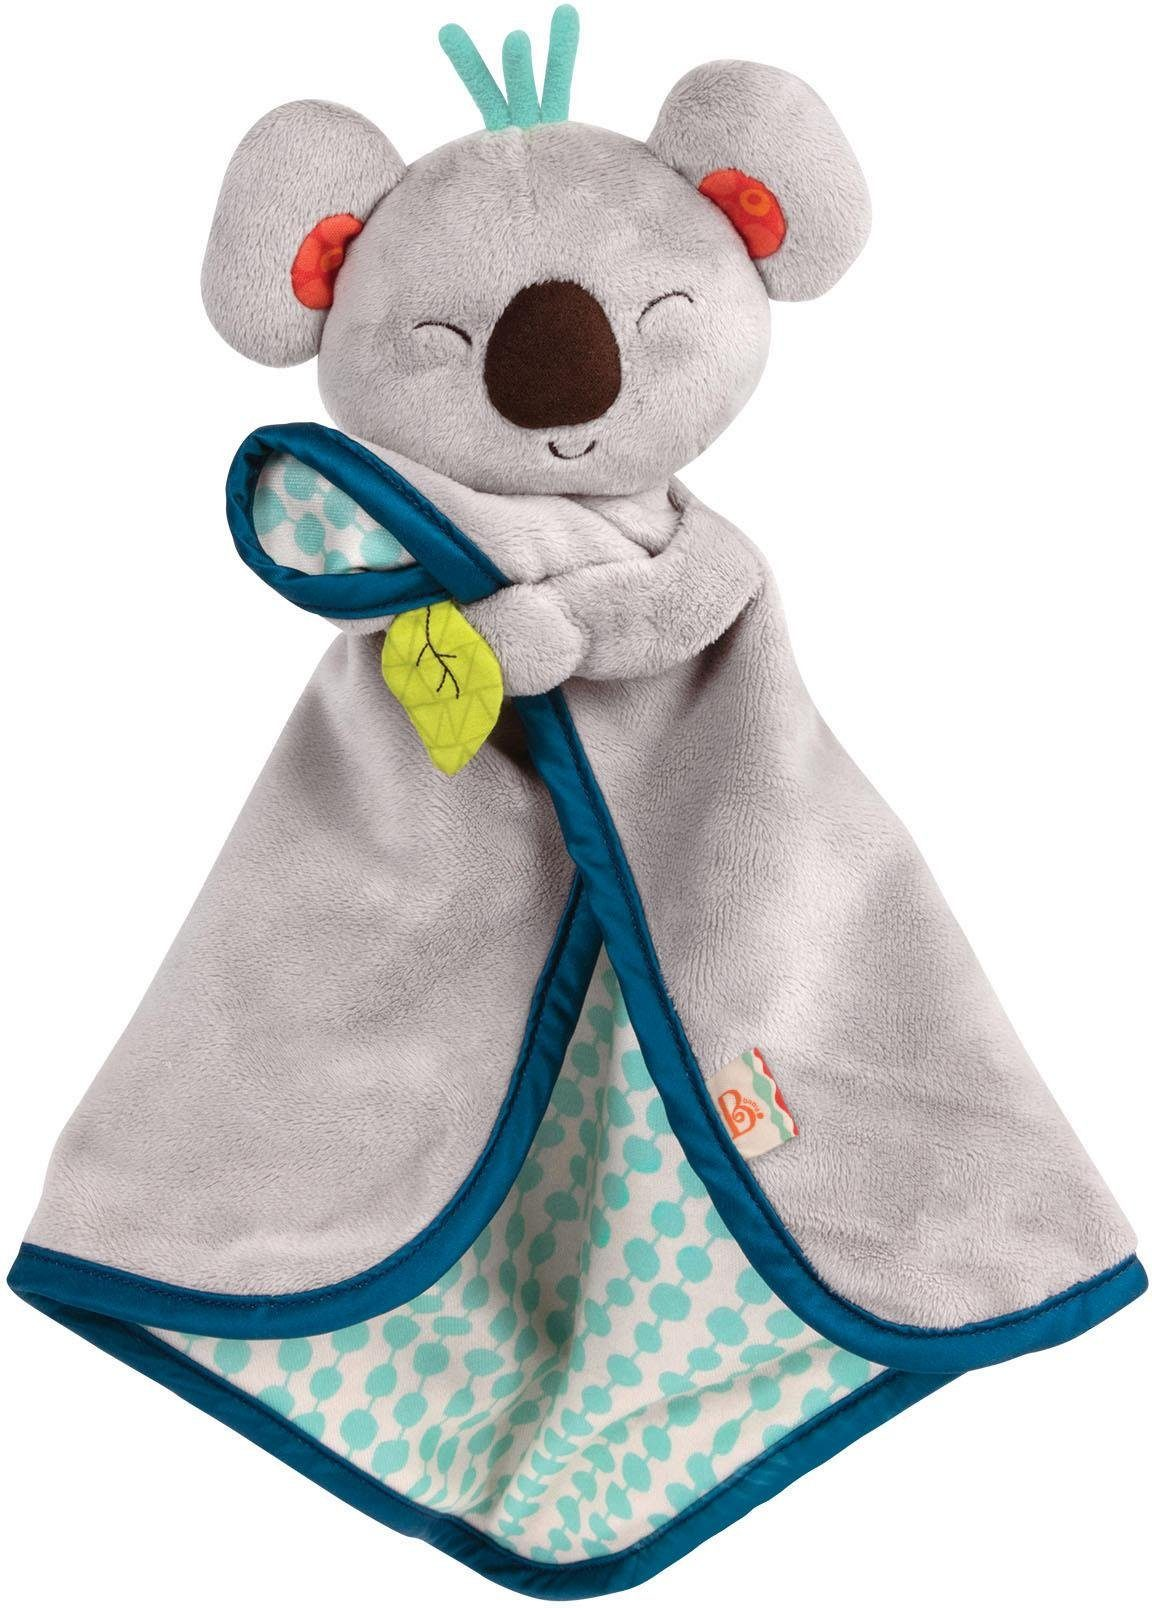 B.Toys Kuscheltuch, »Security Blanket Koala«